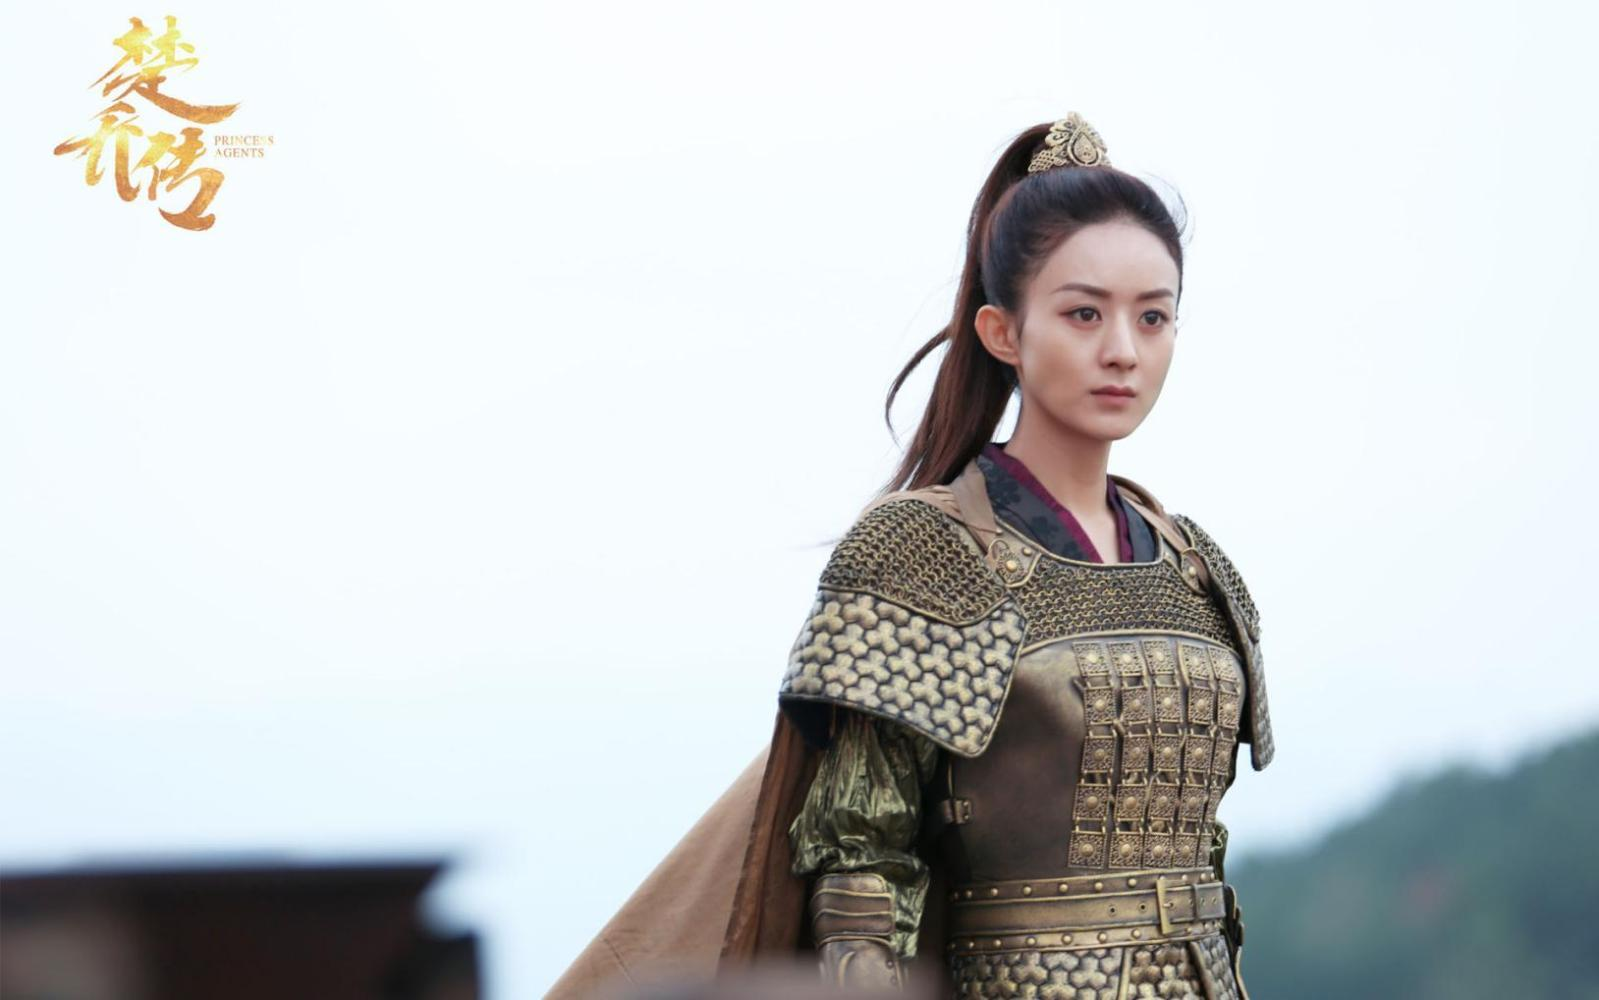 Princess Agents Season 2 Article Translations – Chu Chuan